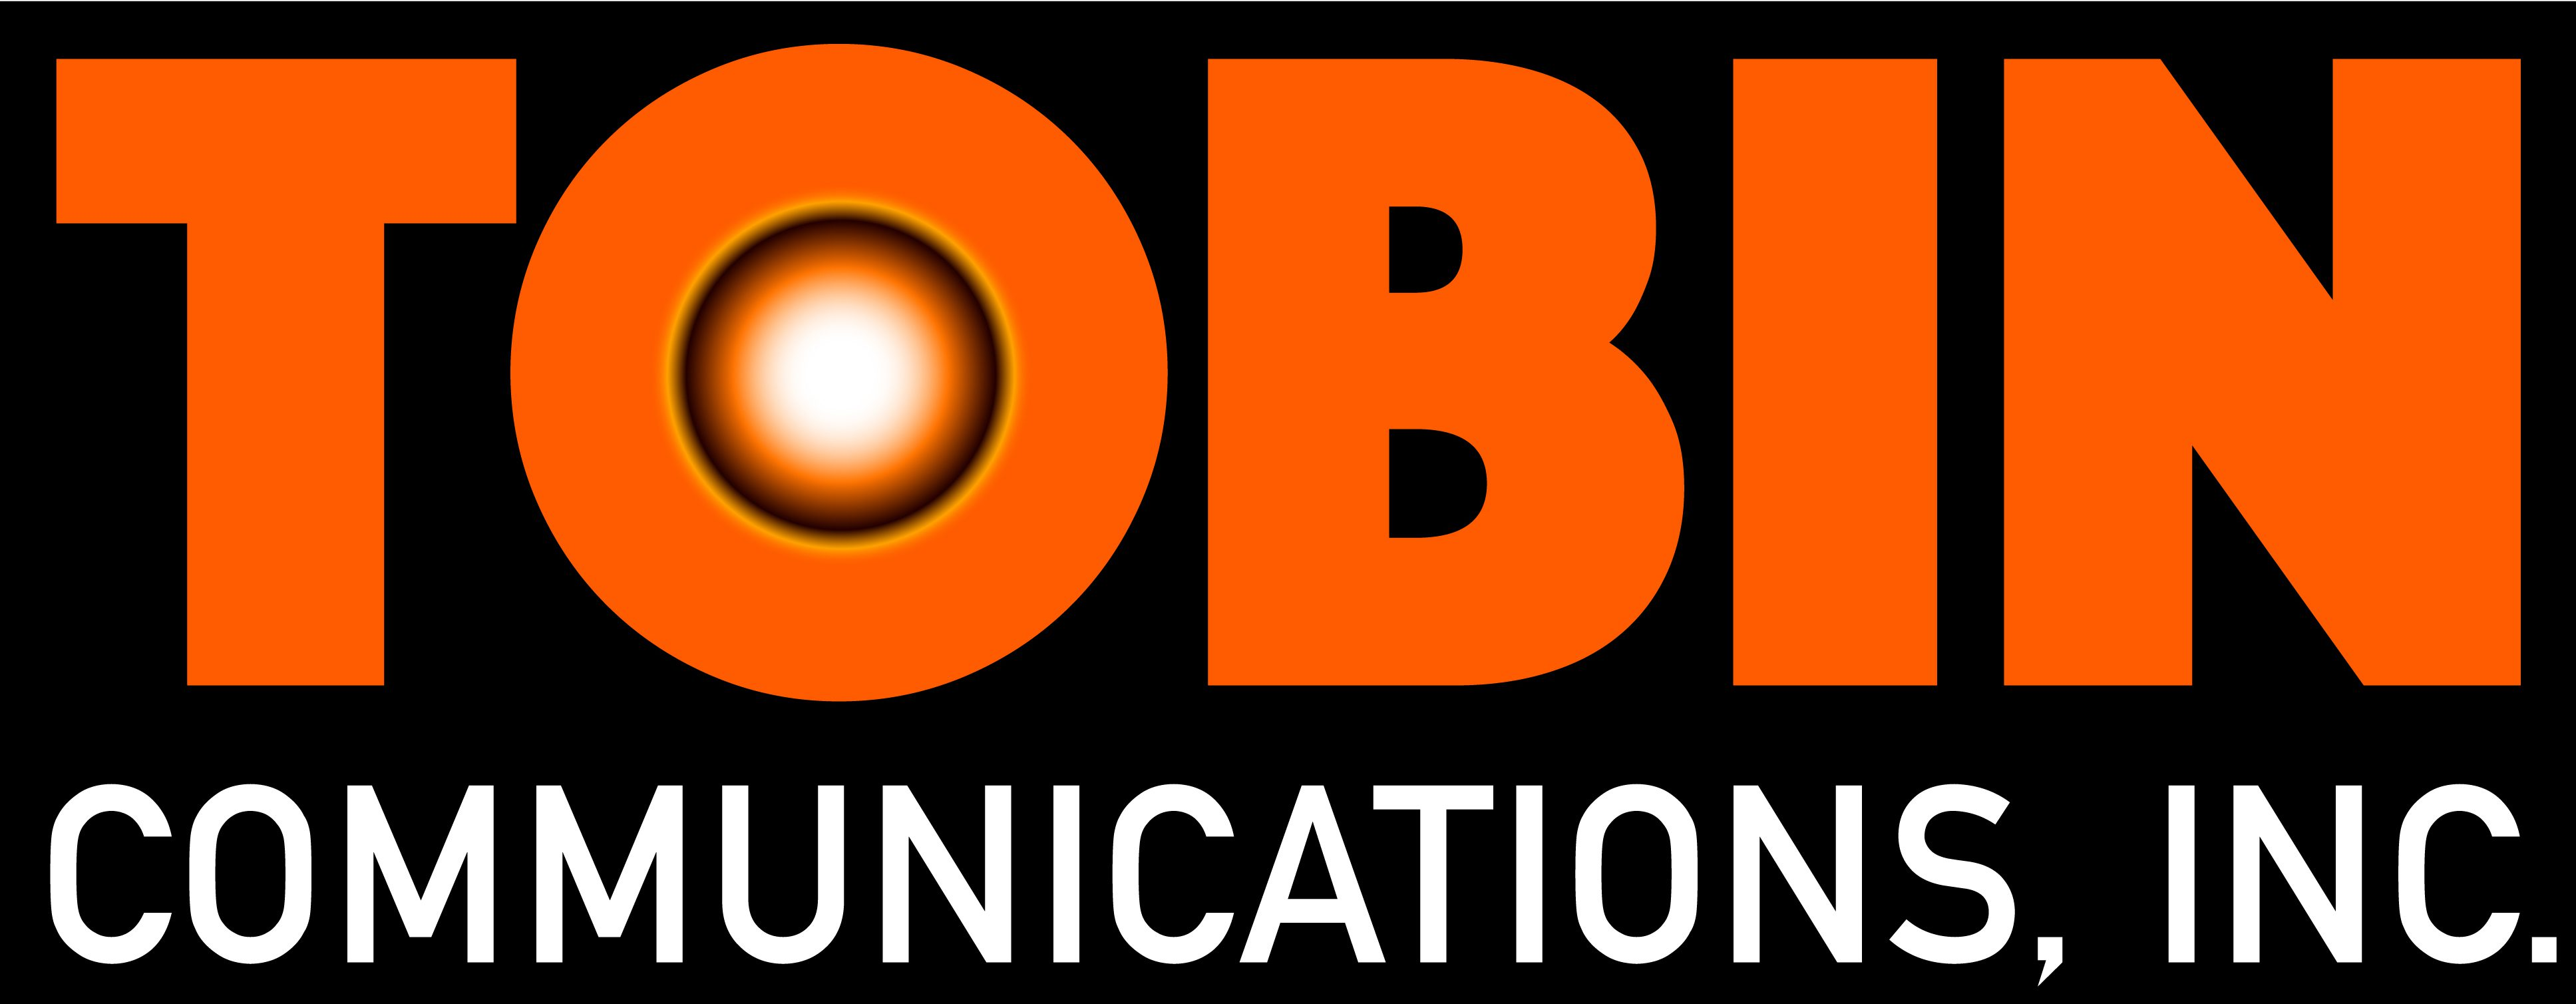 The Tobin Communications Download — News, Opinions & Radio Media Tours